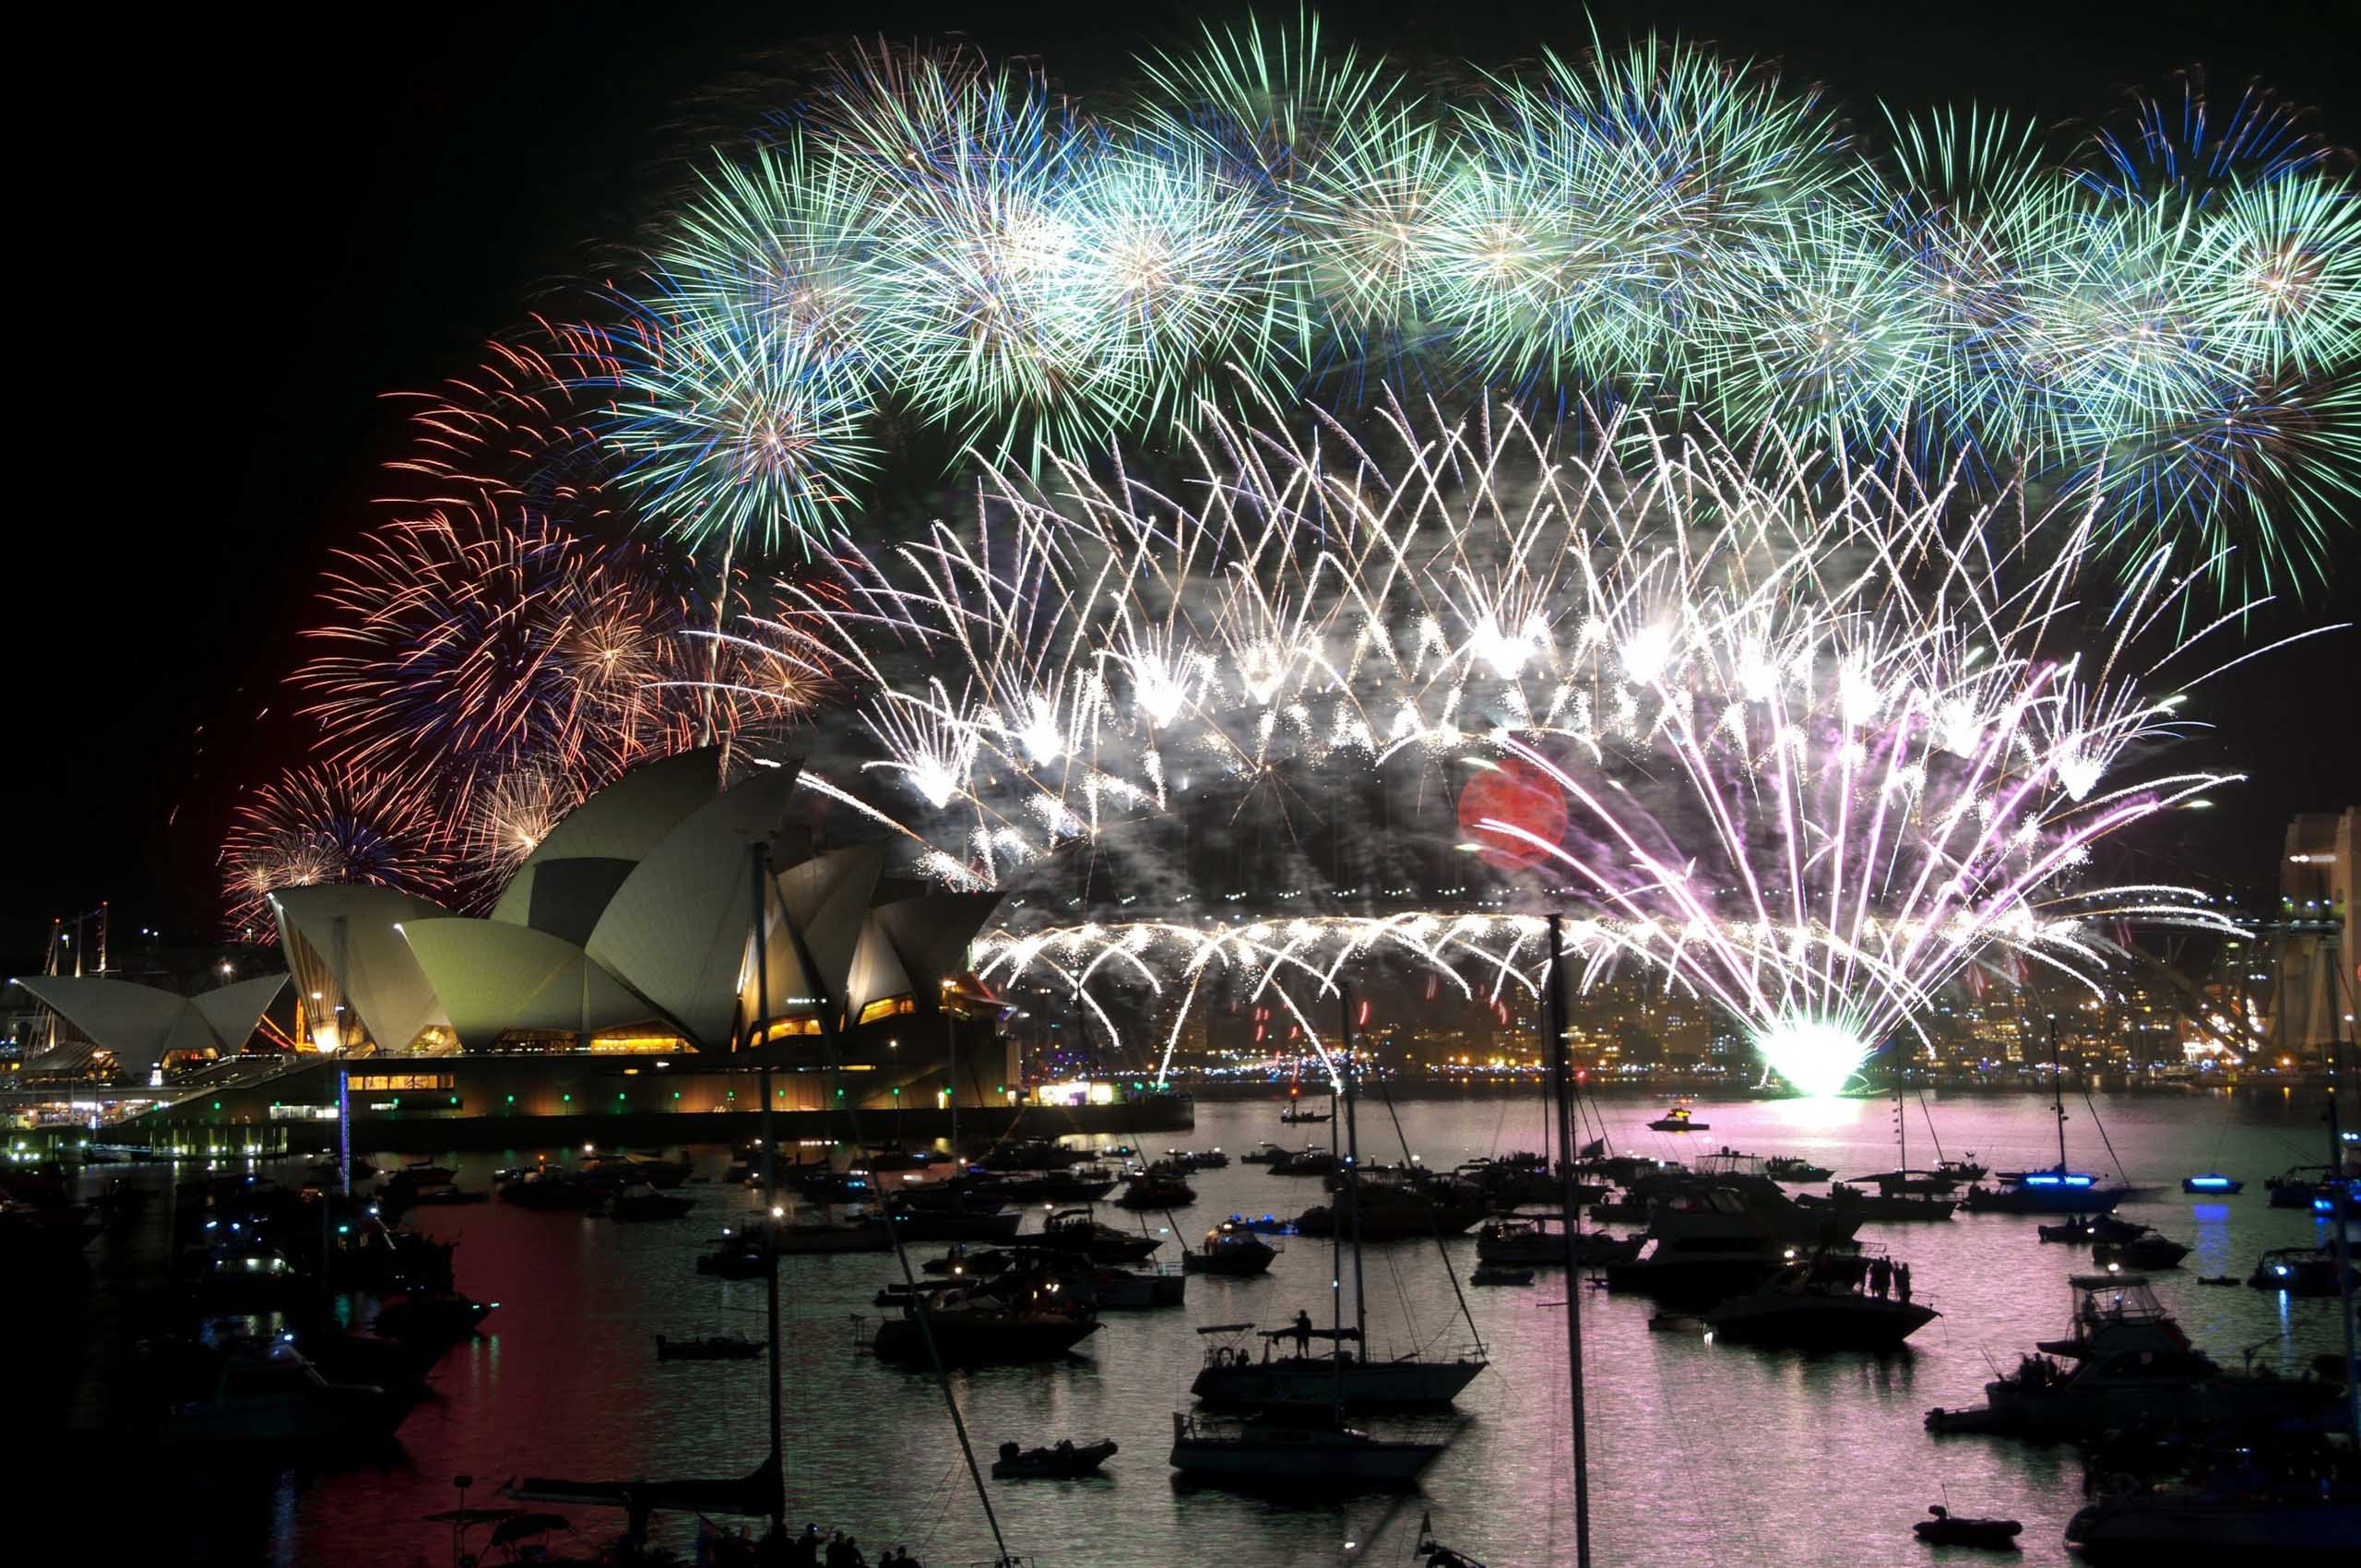 New Year's Eve fireworks from the Harbour Bridge and over Sydney Harbour, with reflections on the water